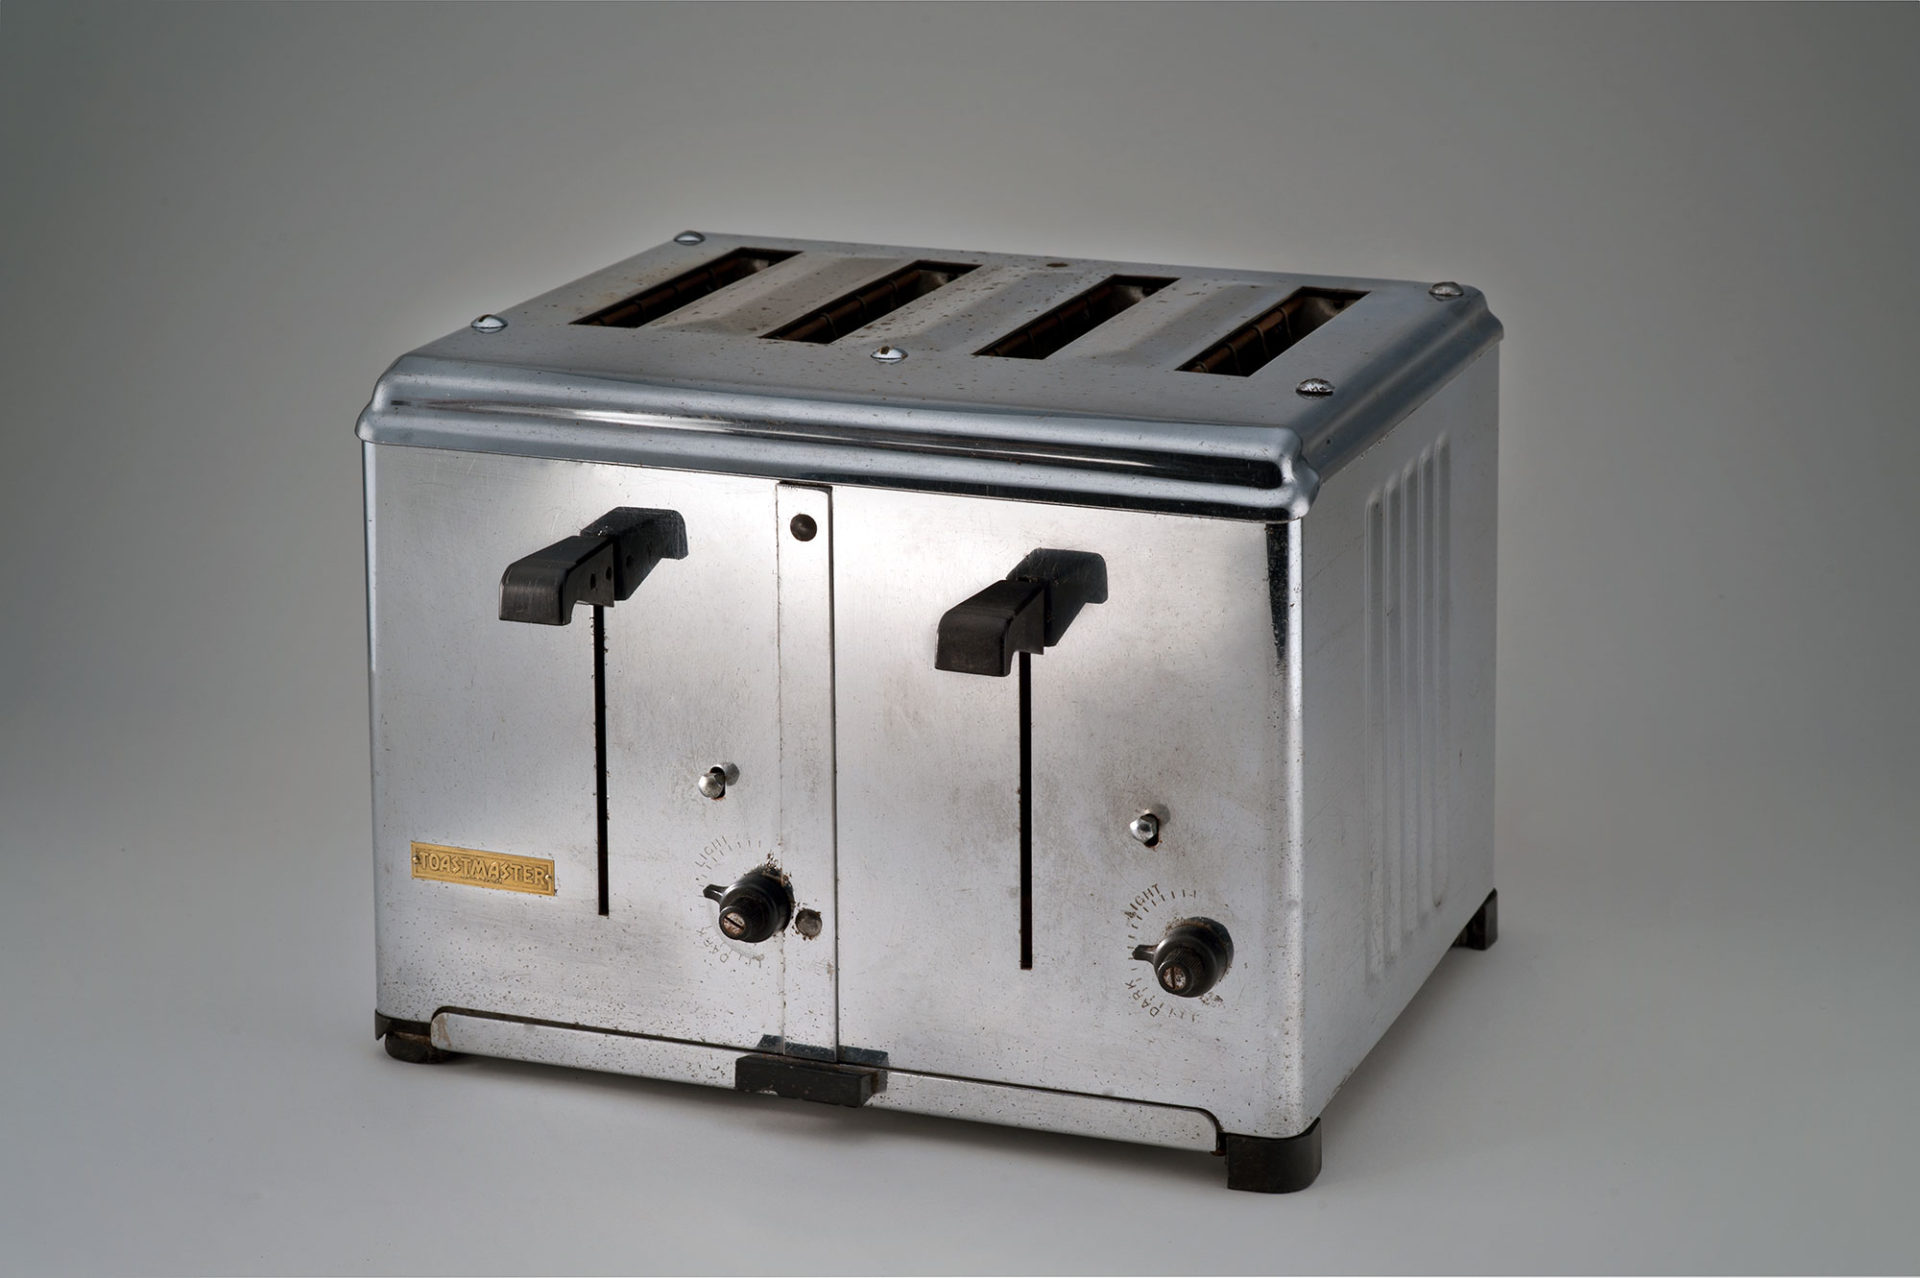 Box-shaped shiny metal toaster with openings for four slices of bread. It has two levers and two control knobs in black plastic on the front.